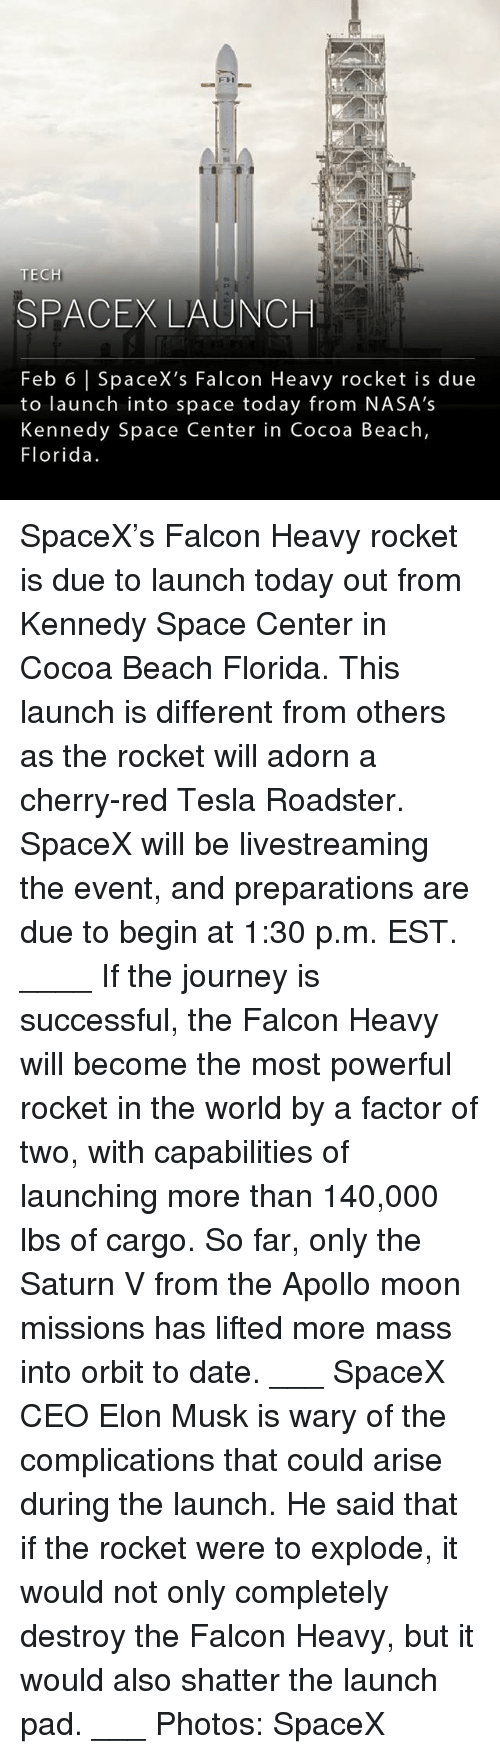 Spacex Launch: FH  TECH  SPACEX LAUNCH  Feb 6 |SpaceX's Falcon Heavy rocket is due  to launch into space today from NASA's  Kennedy Space Center in Cocoa Beach,  Florida. SpaceX's Falcon Heavy rocket is due to launch today out from Kennedy Space Center in Cocoa Beach Florida. This launch is different from others as the rocket will adorn a cherry-red Tesla Roadster. SpaceX will be livestreaming the event, and preparations are due to begin at 1:30 p.m. EST. ____ If the journey is successful, the Falcon Heavy will become the most powerful rocket in the world by a factor of two, with capabilities of launching more than 140,000 lbs of cargo. So far, only the Saturn V from the Apollo moon missions has lifted more mass into orbit to date. ___ SpaceX CEO Elon Musk is wary of the complications that could arise during the launch. He said that if the rocket were to explode, it would not only completely destroy the Falcon Heavy, but it would also shatter the launch pad. ___ Photos: SpaceX